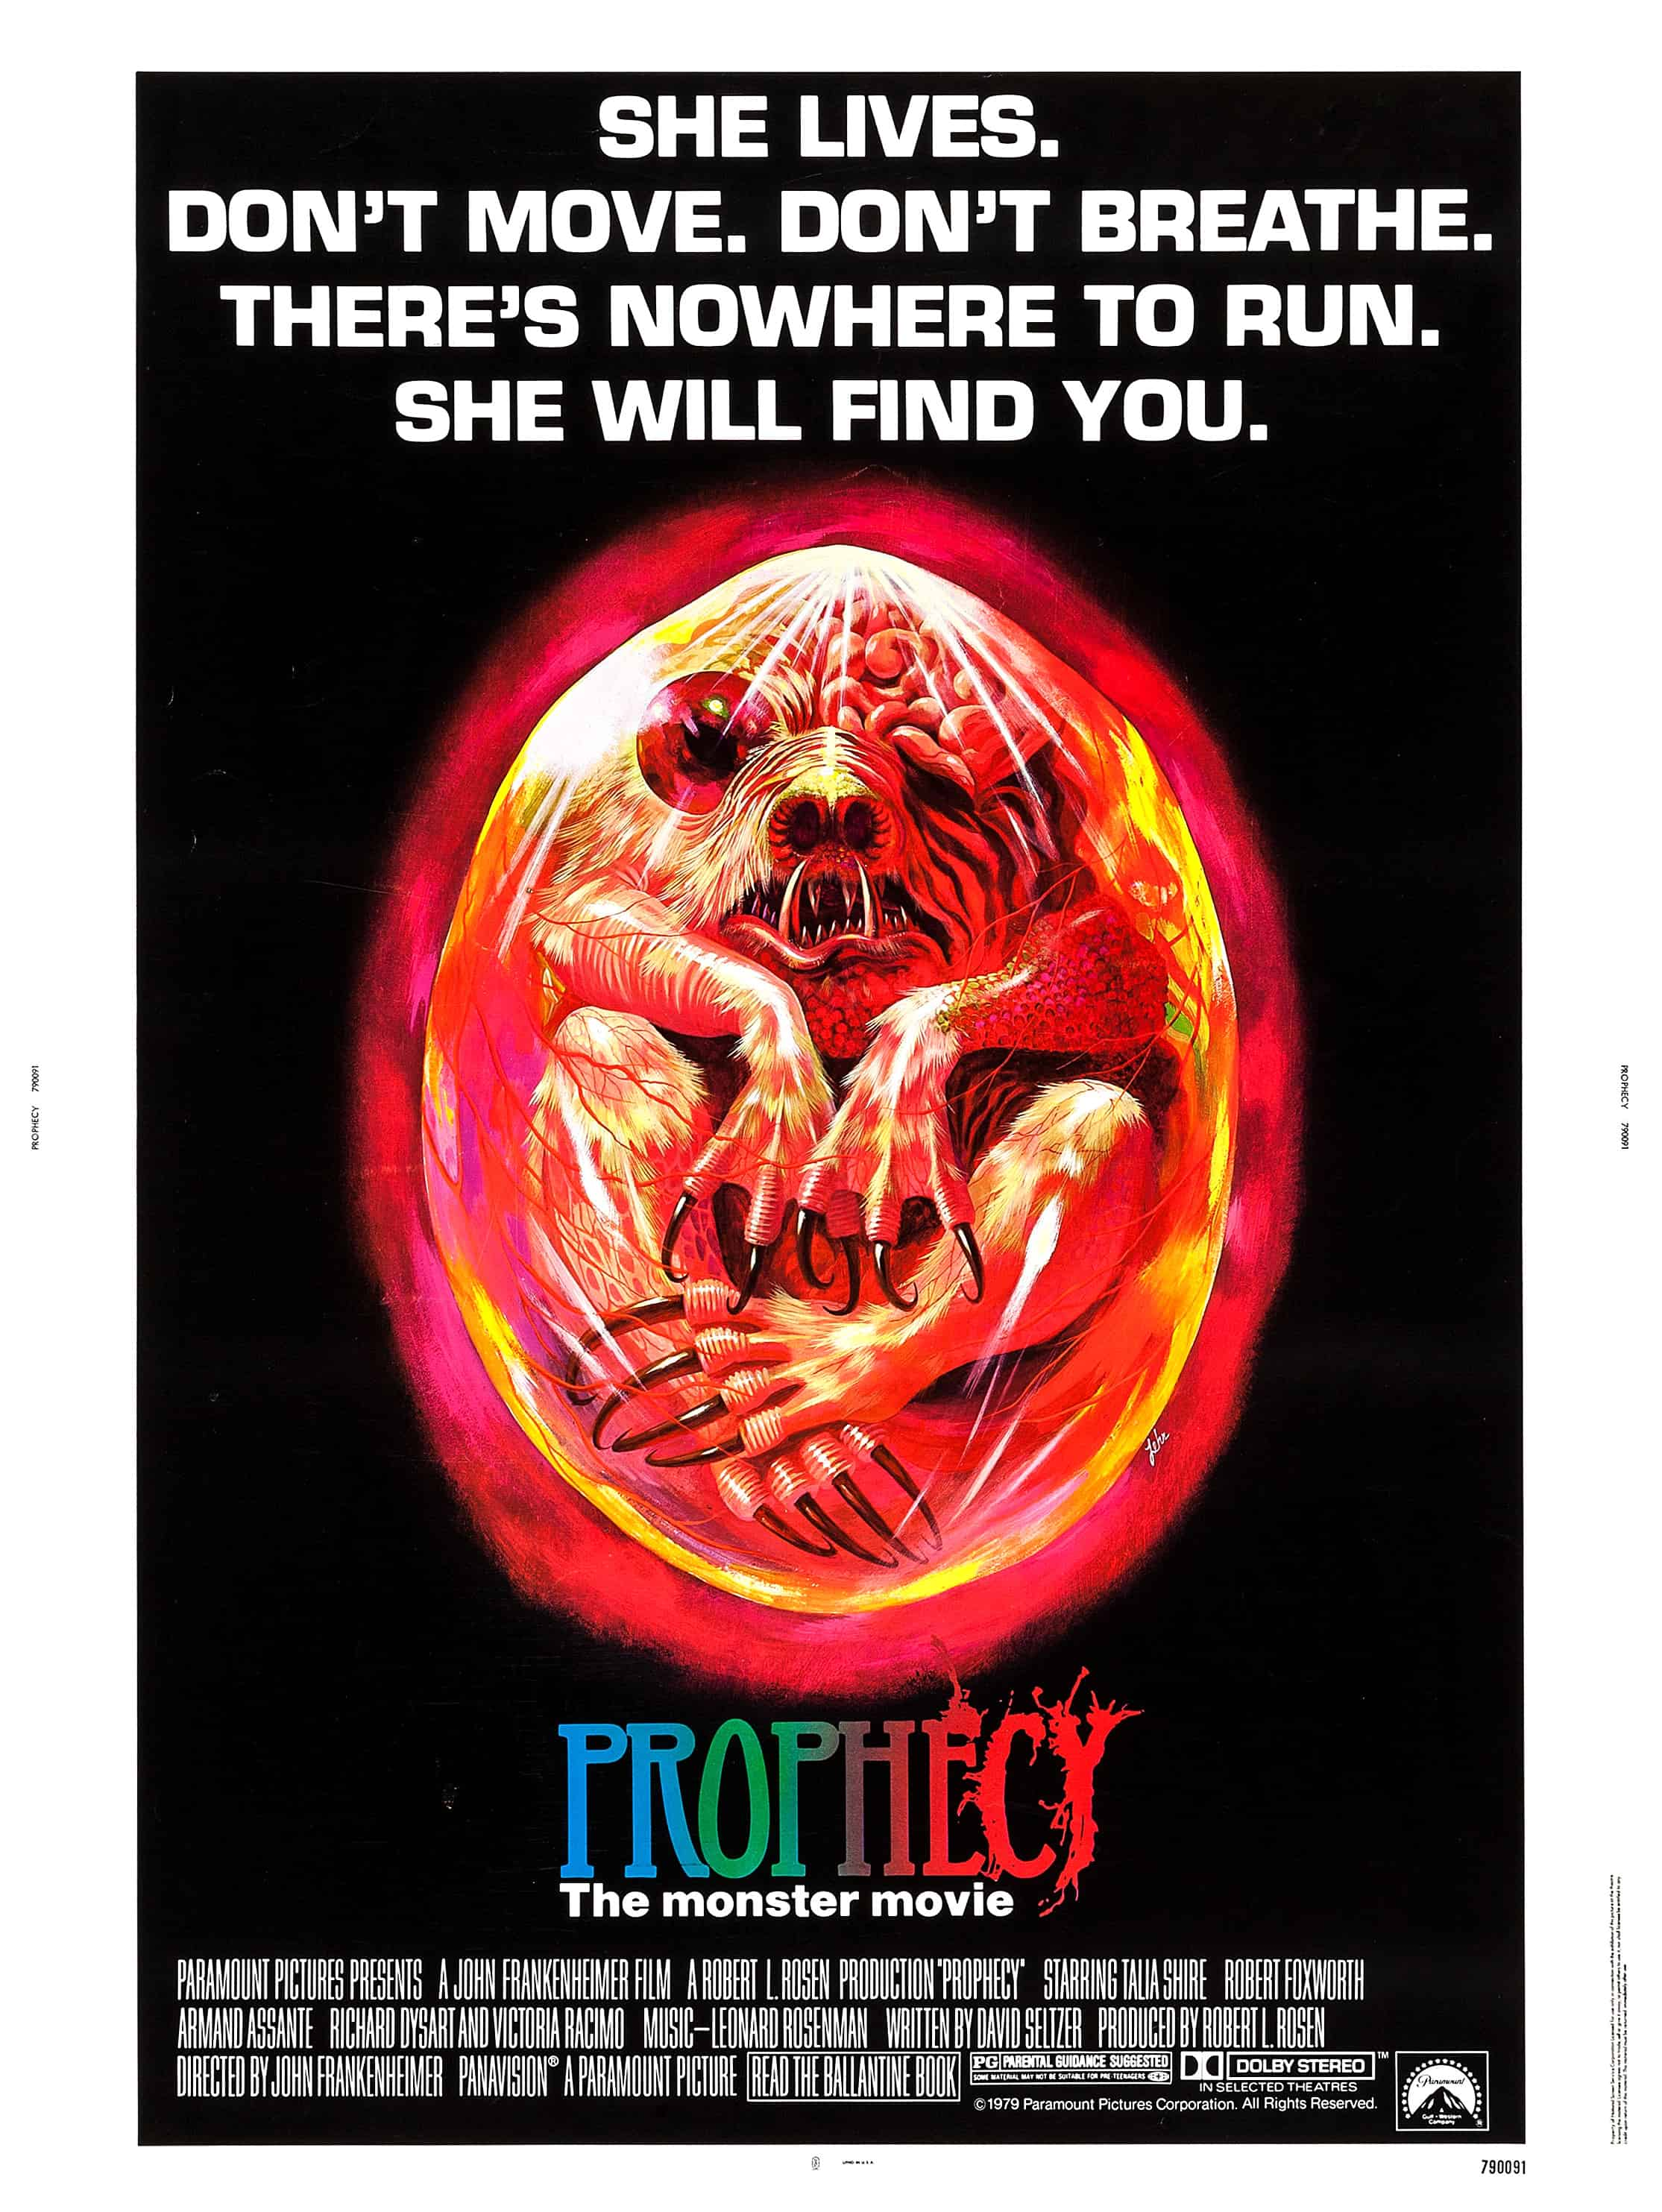 Movie Posters We Love: Prophecy